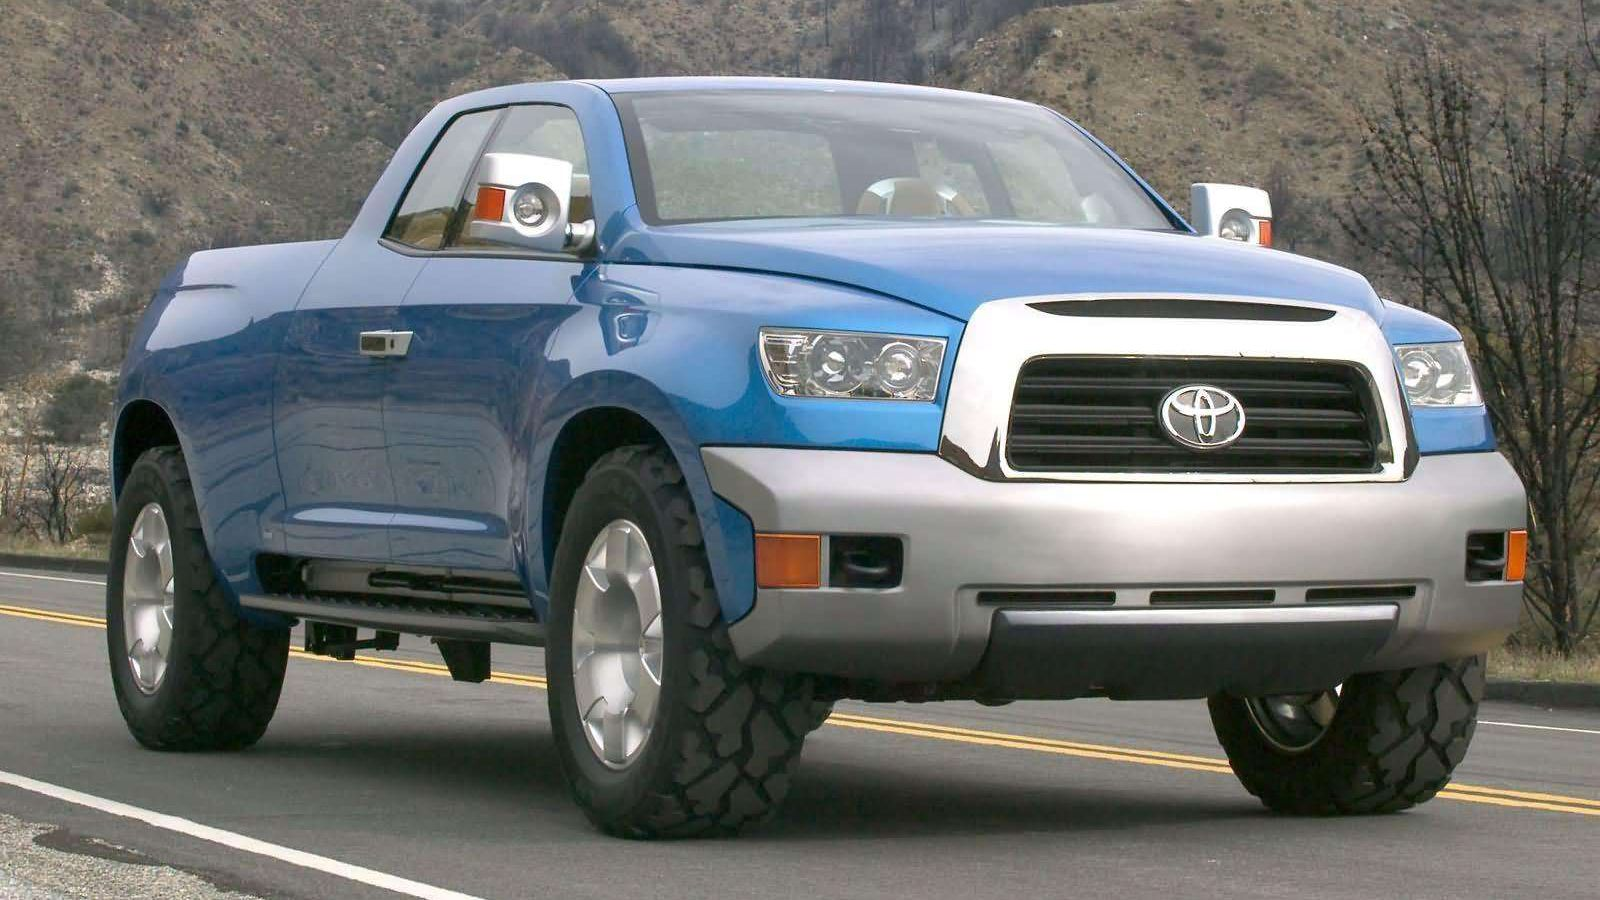 New toyota hilux 2015 car design 2016 get your wallet ready check your car